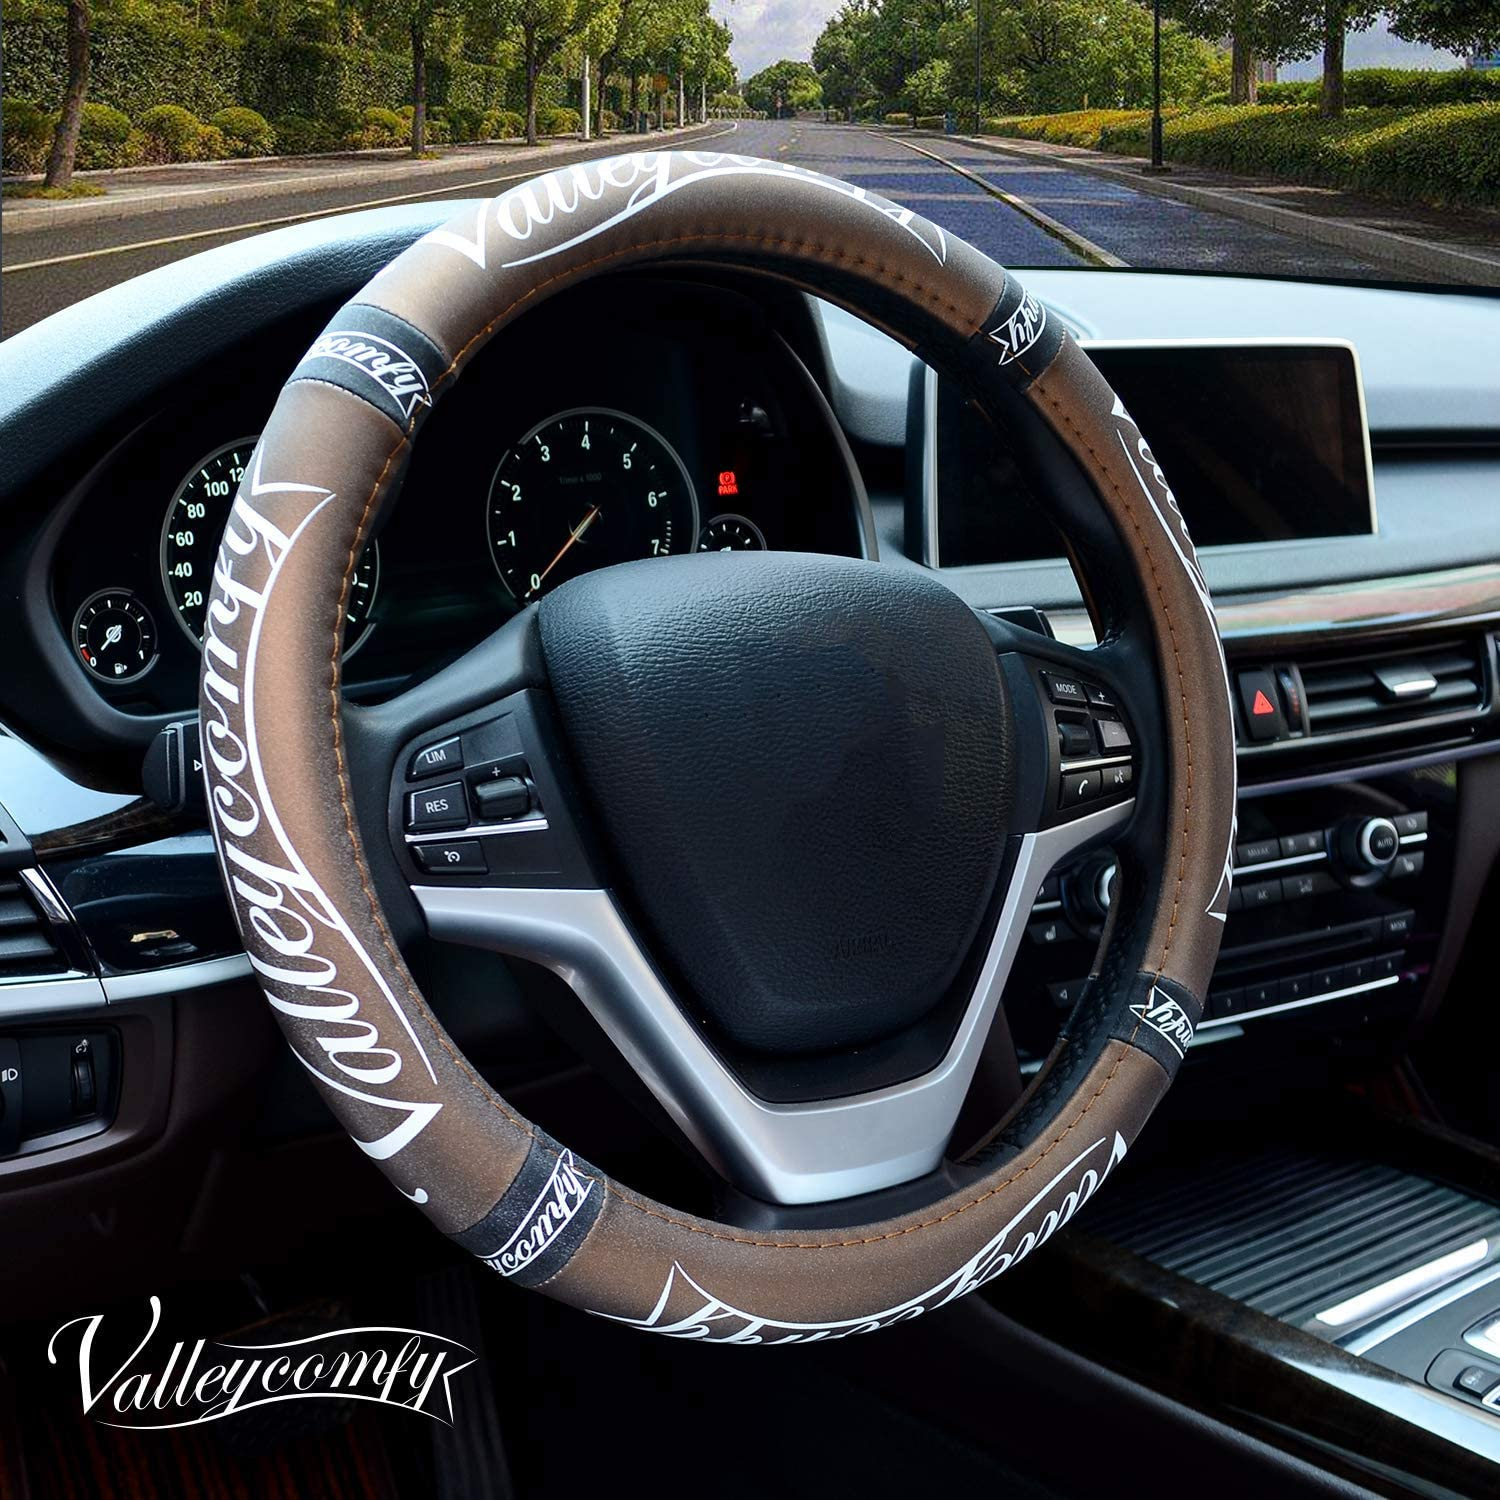 Valleycomfy Steering Wheel Covers Universal 15 inch Breathable Anti Slip /& Odor Free with Pu Leather for Car Truck SUV